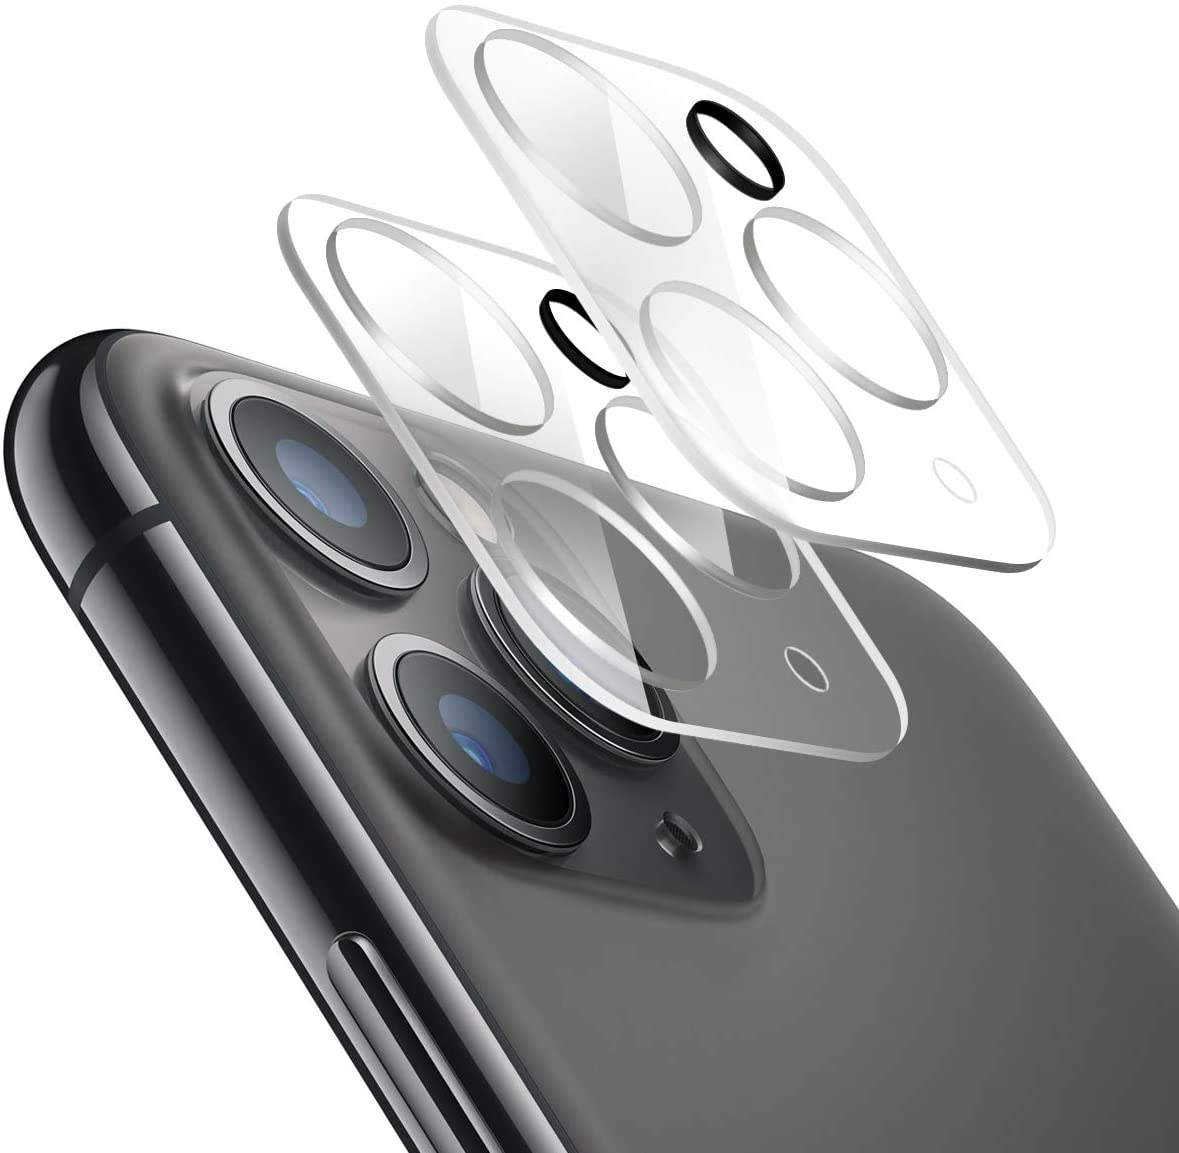 Tuopuna [3 Packs] Camera Lens Screen Protector for iPhone 11 Pro Max, Tempered Glass Film for Apple Lens Screen for iPhone 11 Pro - Clear